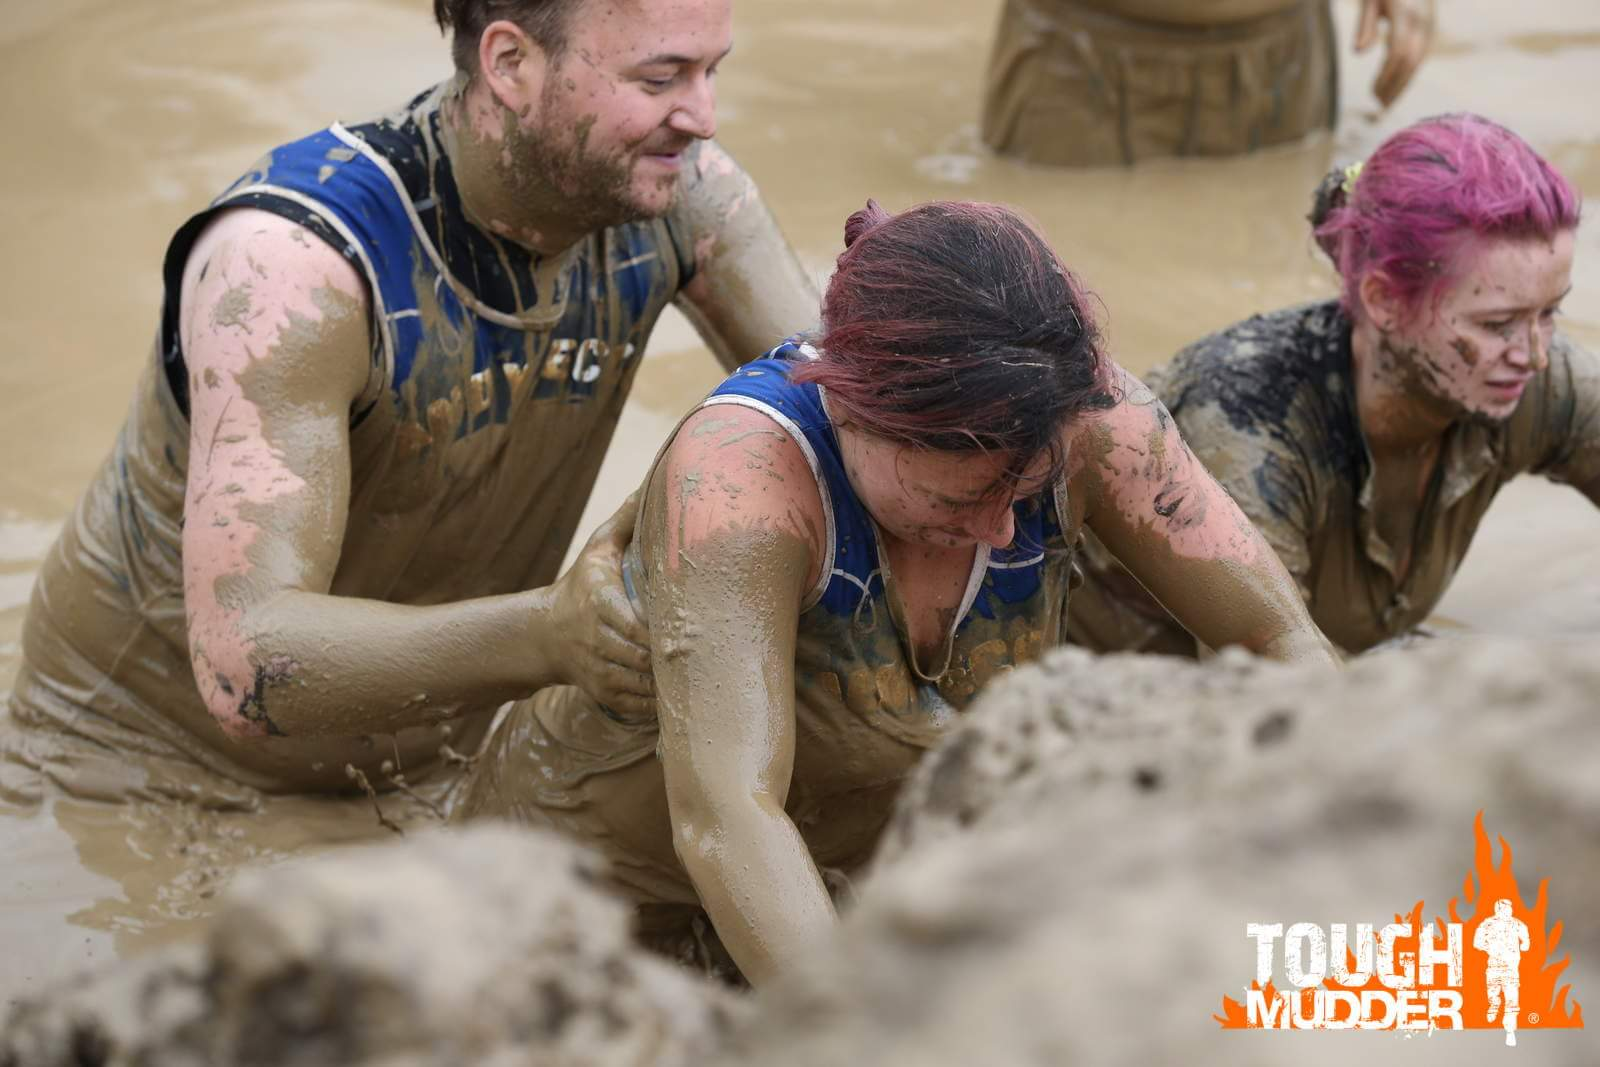 Group pushing through the mud at the Tough Mudder event